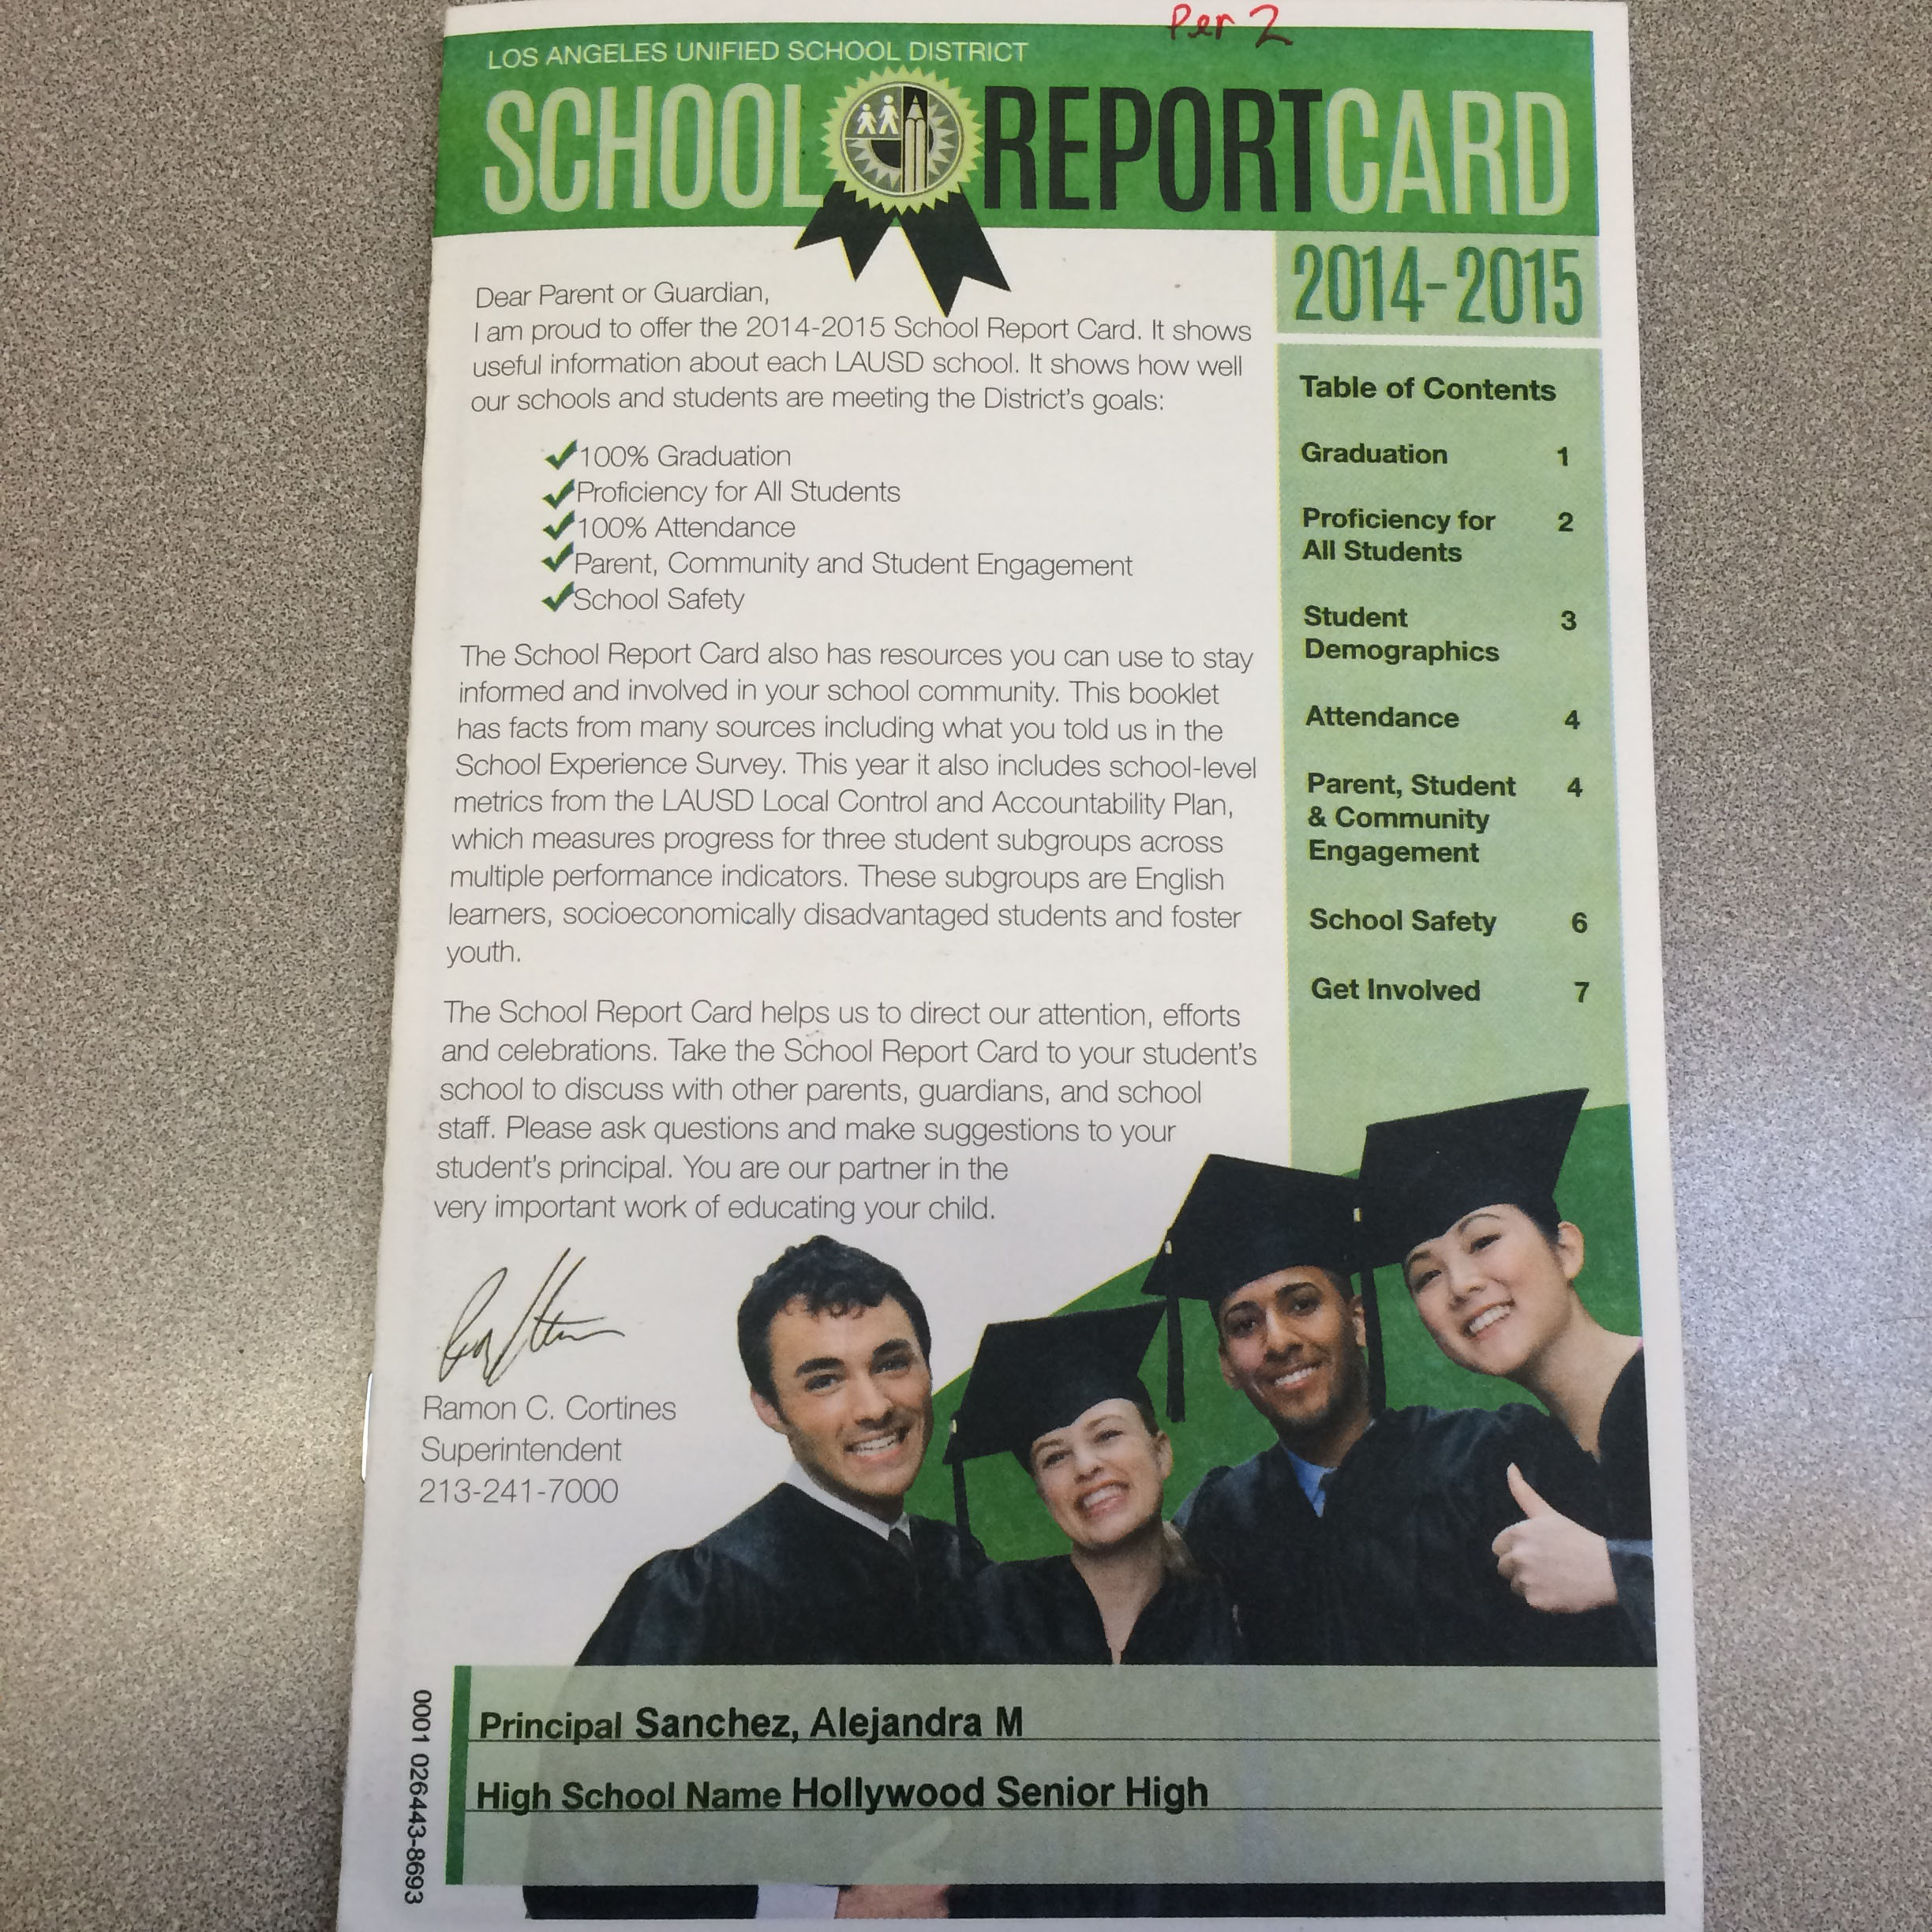 School Report Card Shows Mixed Results